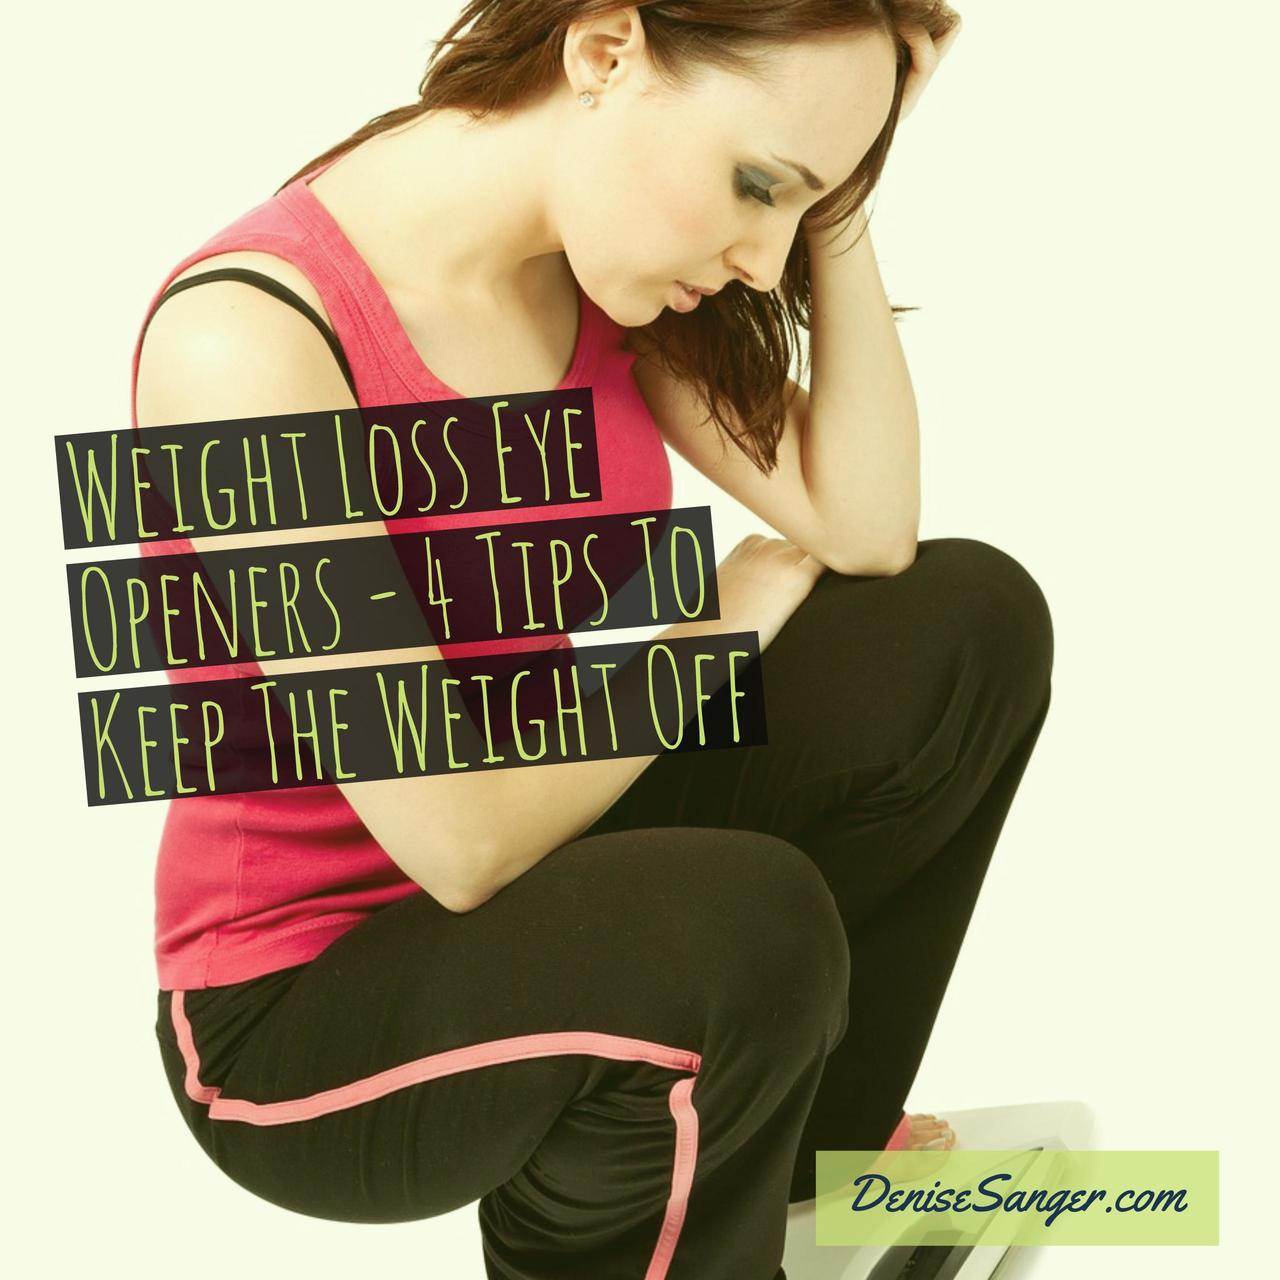 Weight Loss Eye Openers – 4 Tips To Keep The Weight Off